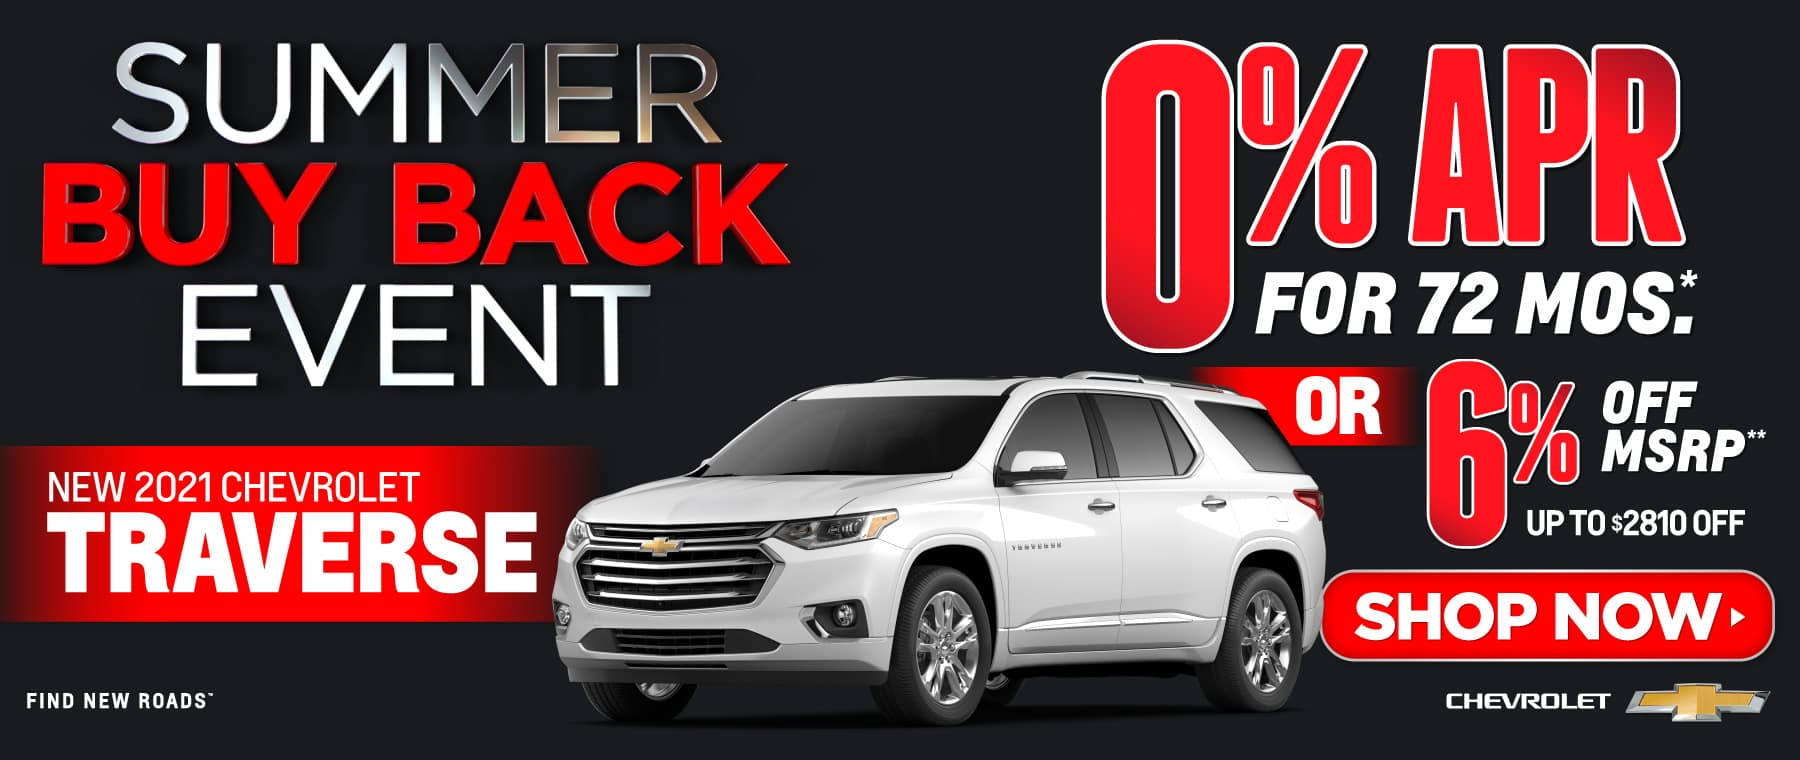 New 2021 Chevy Traverse - 0% APR for 72 months - Act now